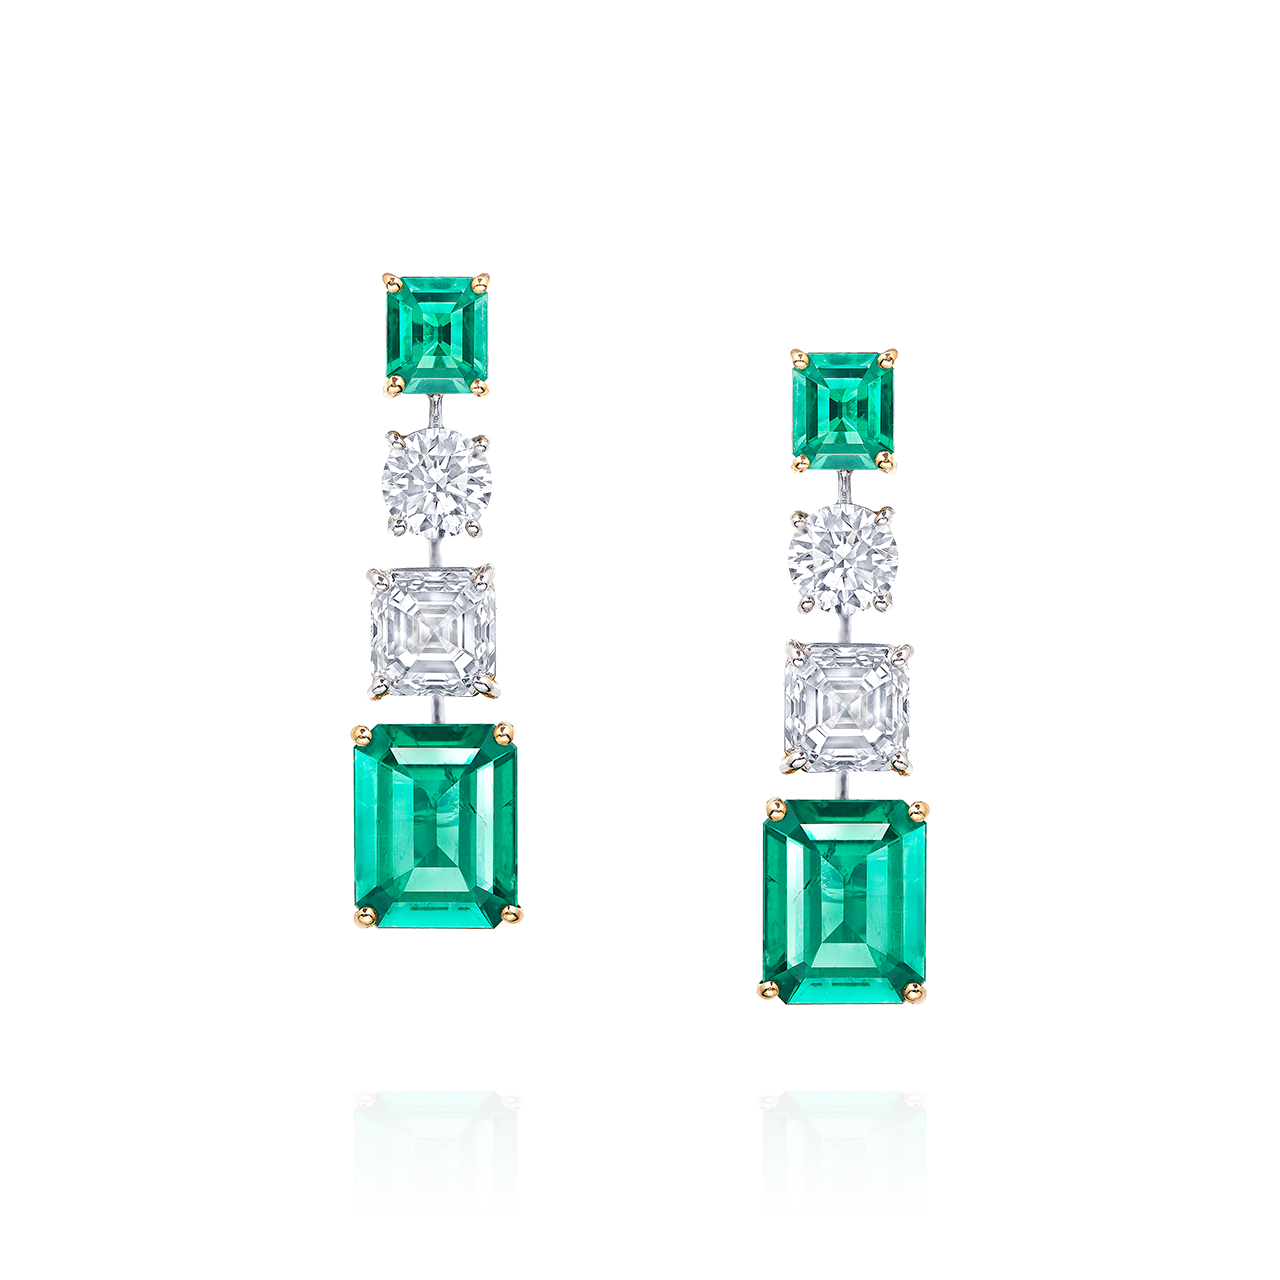 GIA 哥倫比亞天然無浸油艷彩祖母綠鑽石耳環